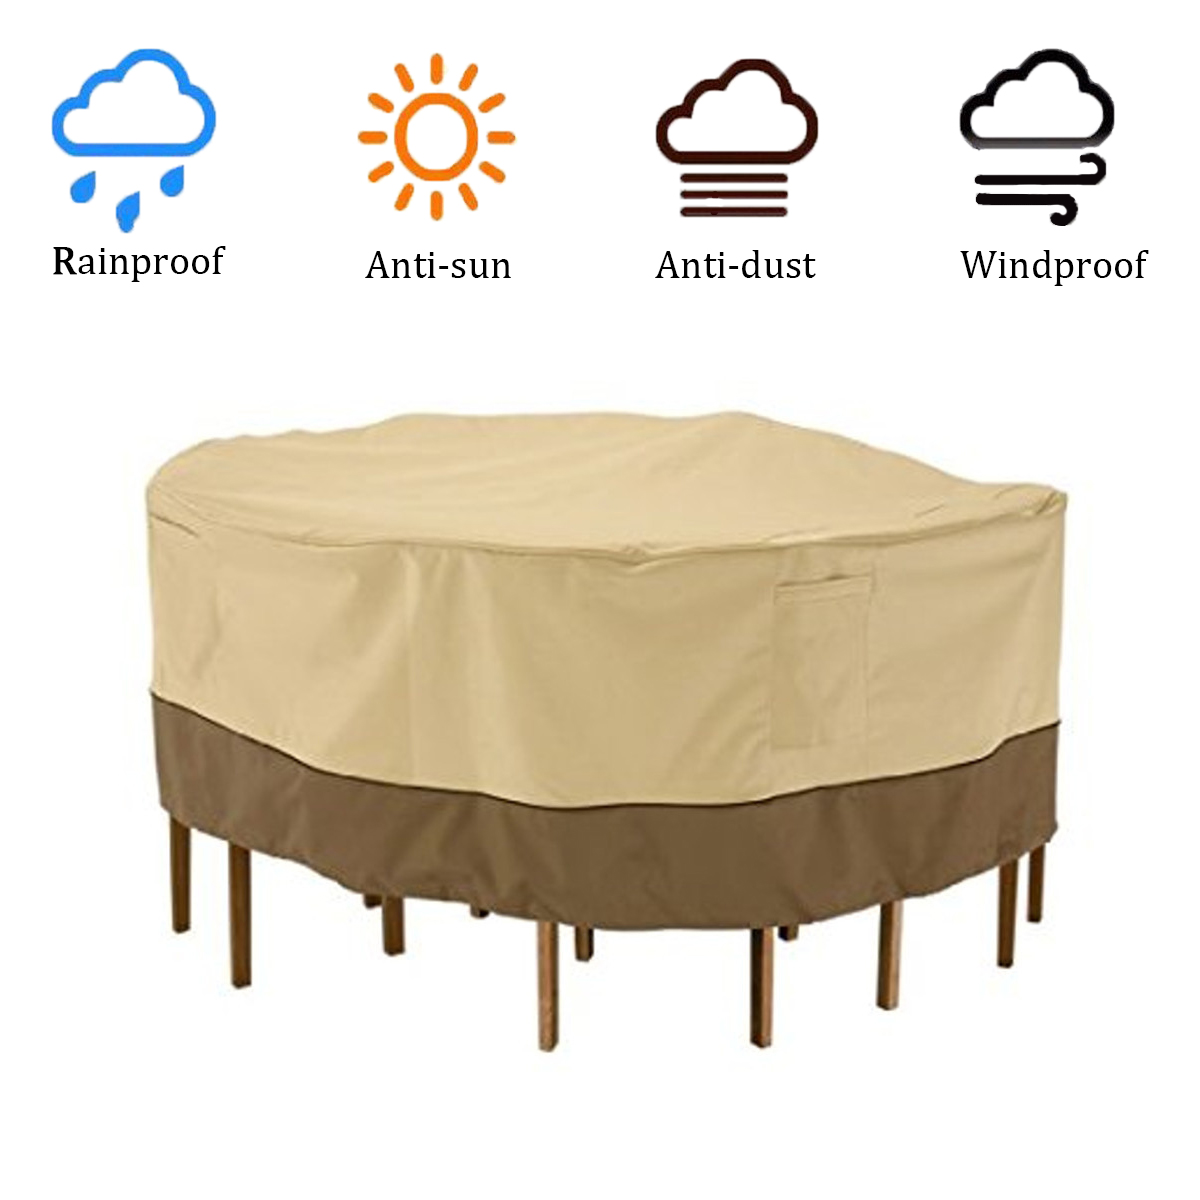 Garden Round Waterproof Table Cover Patio Outdoor Furniture Set Shelter Protection 3